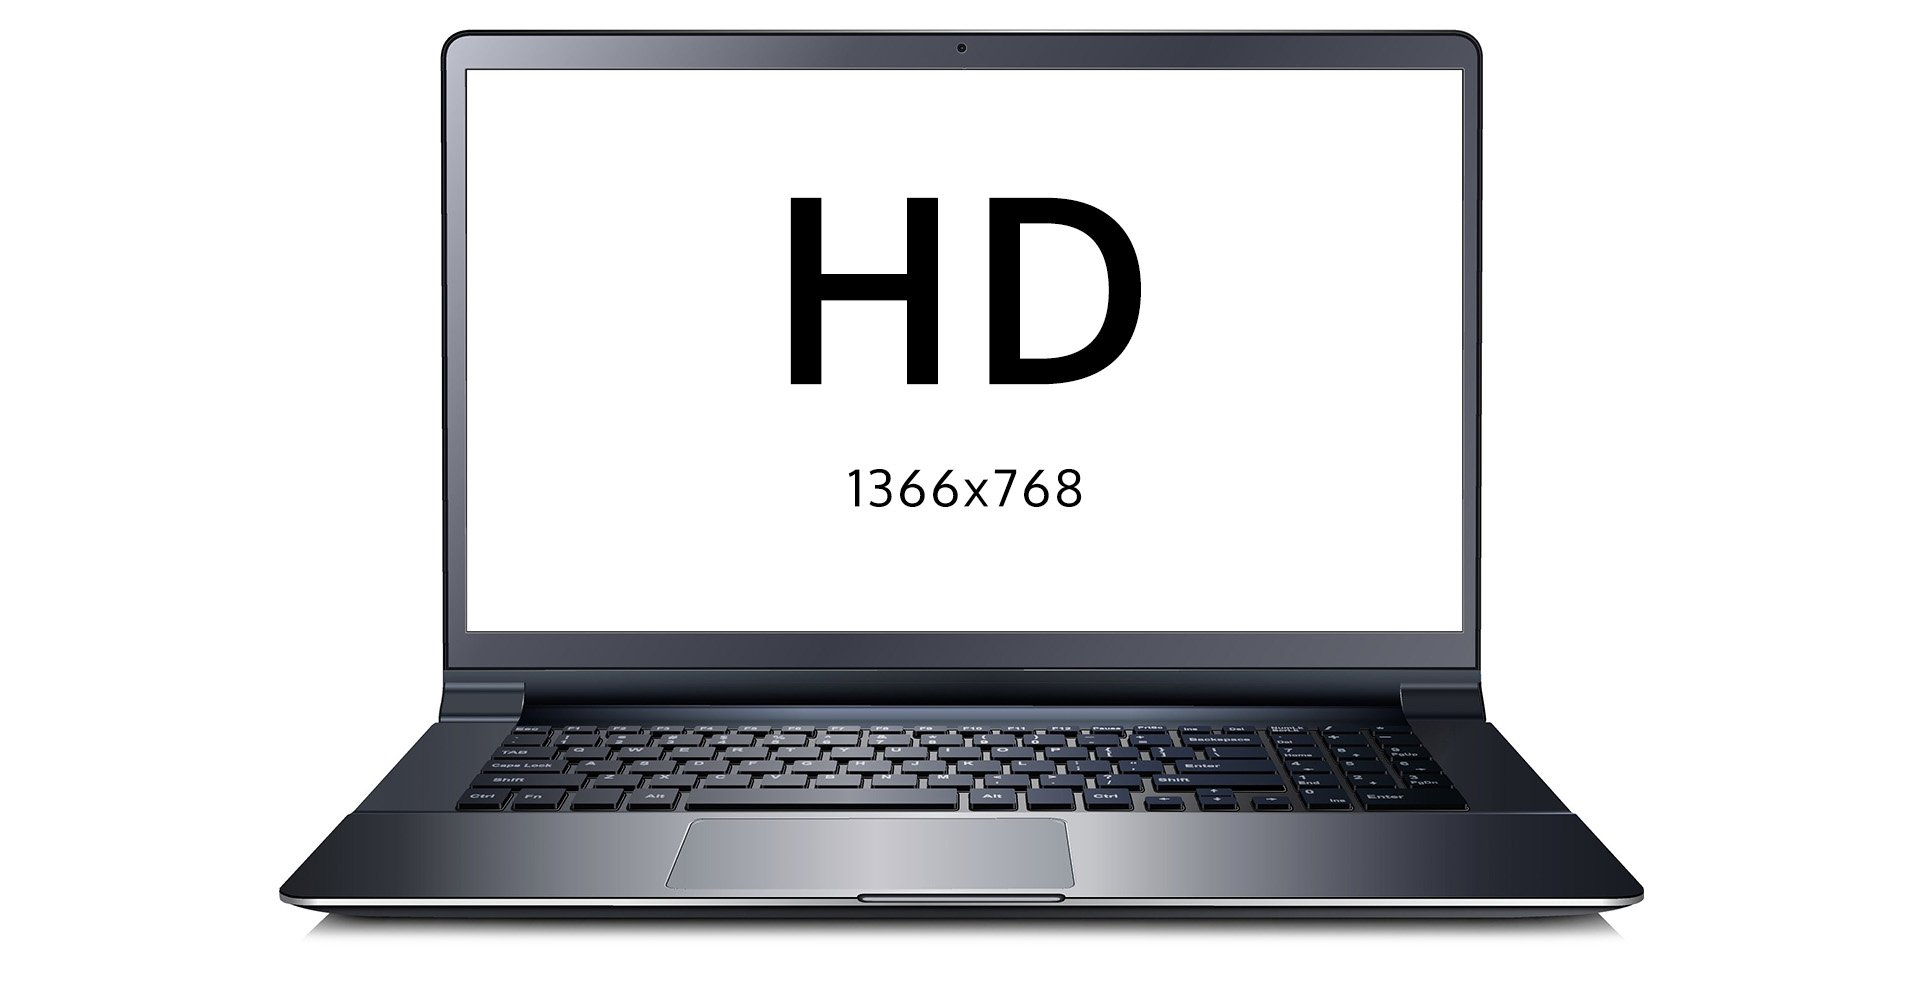 Lenovo IdeaPad 320 (80XR0083/UK) 8 GB RAM/ 1TB HDD/ Win10H                             HD 1366x768 resolutsioon